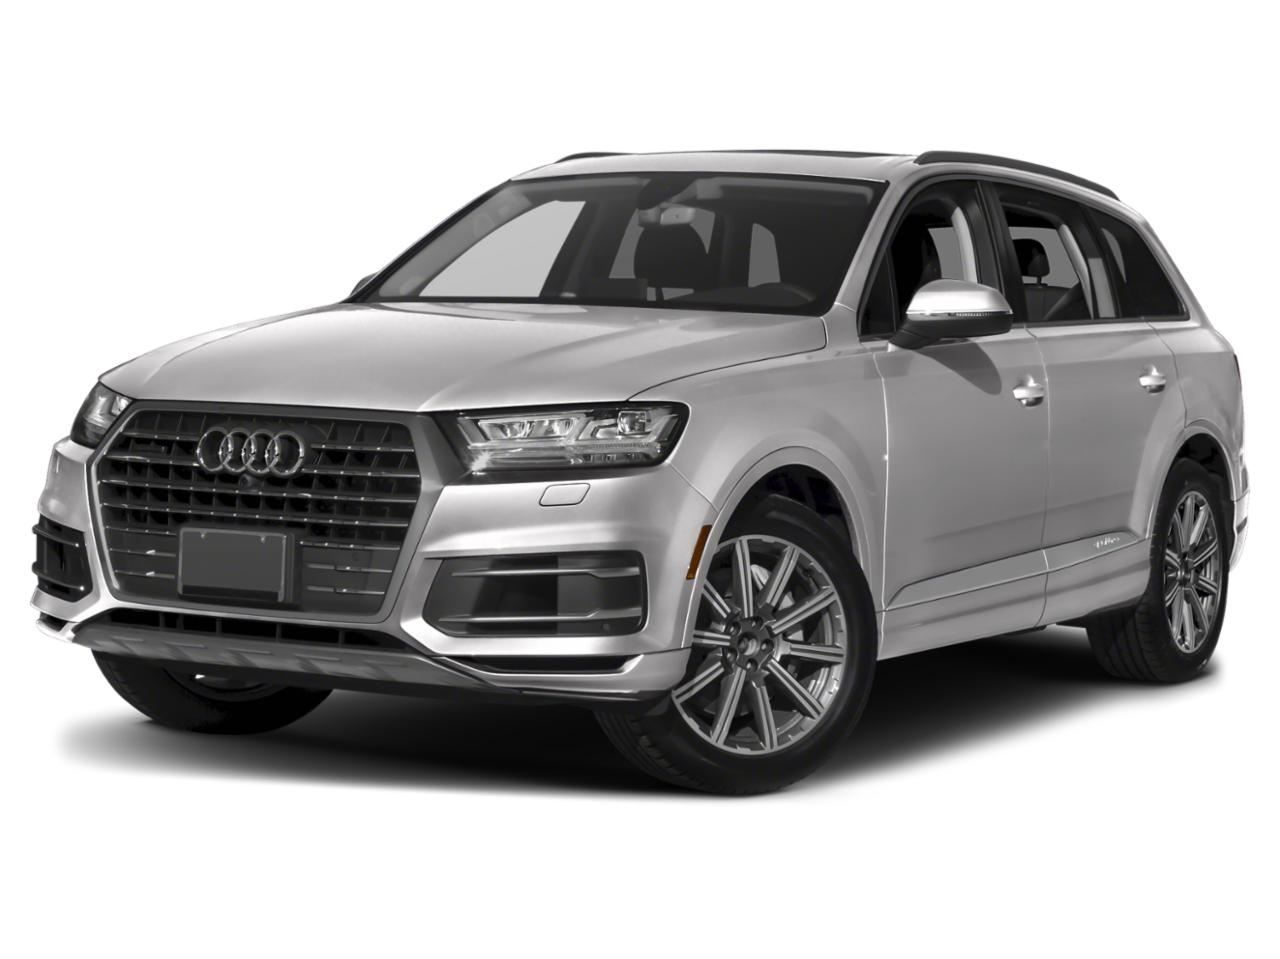 2019 Audi Q7 Vehicle Photo in Austin, TX 78759